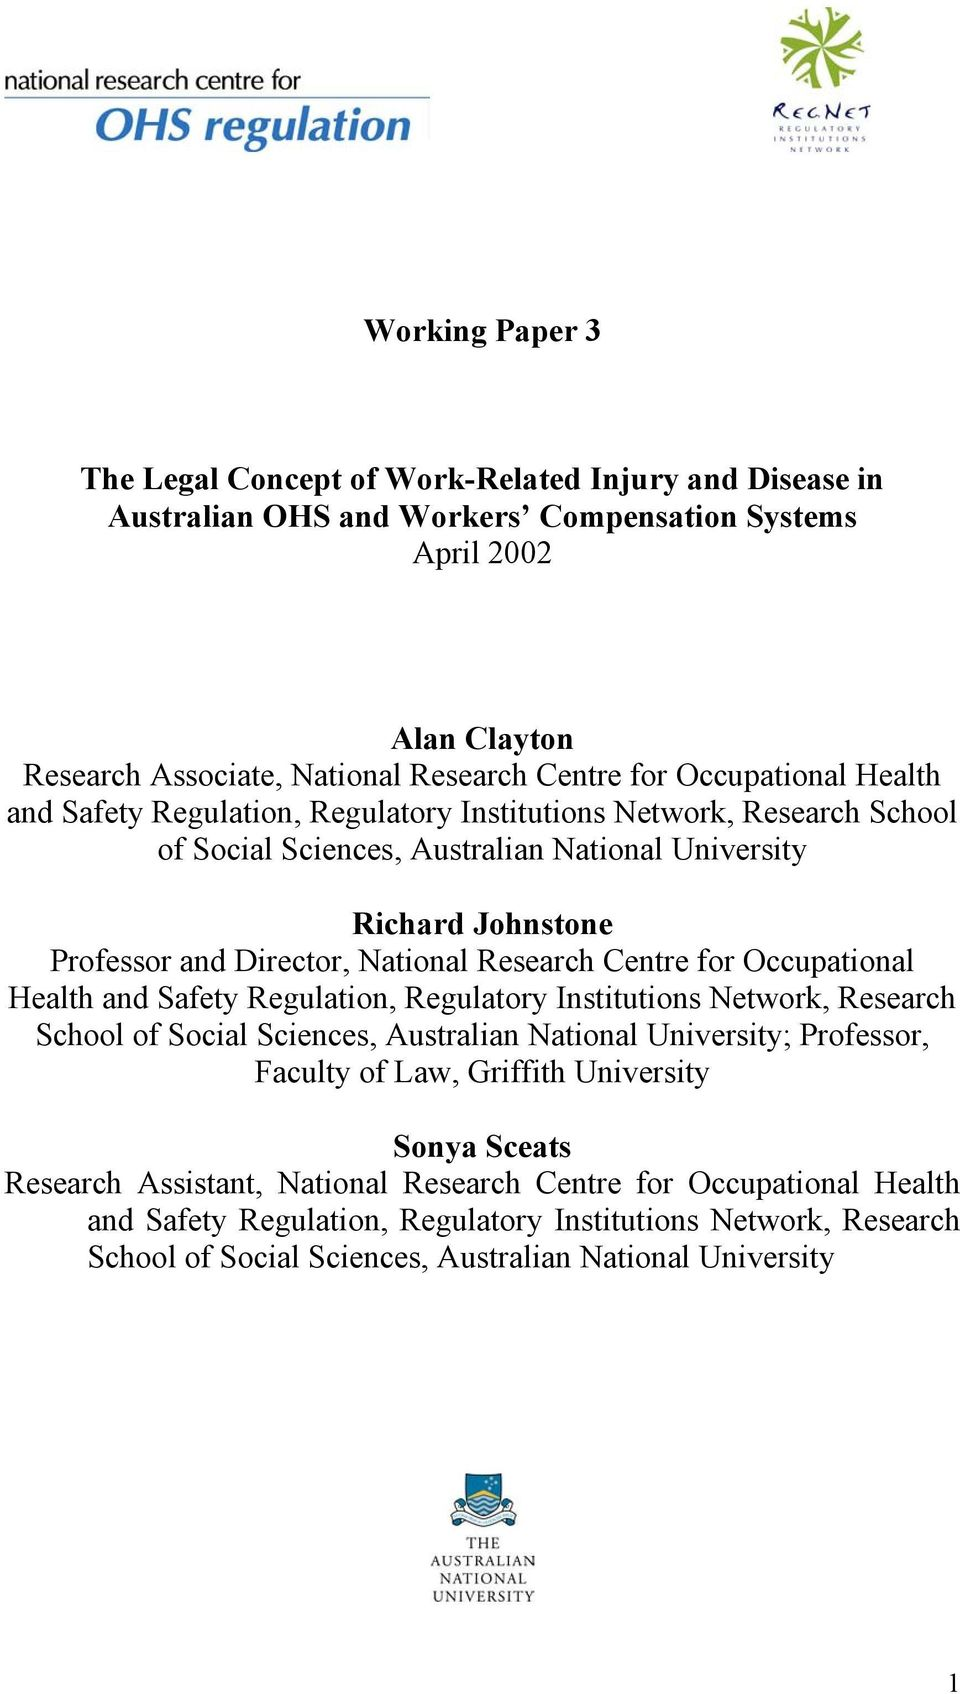 Research Centre for Occupational Health and Safety Regulation, Regulatory Institutions Network, Research School of Social Sciences, Australian National University; Professor, Faculty of Law, Griffith